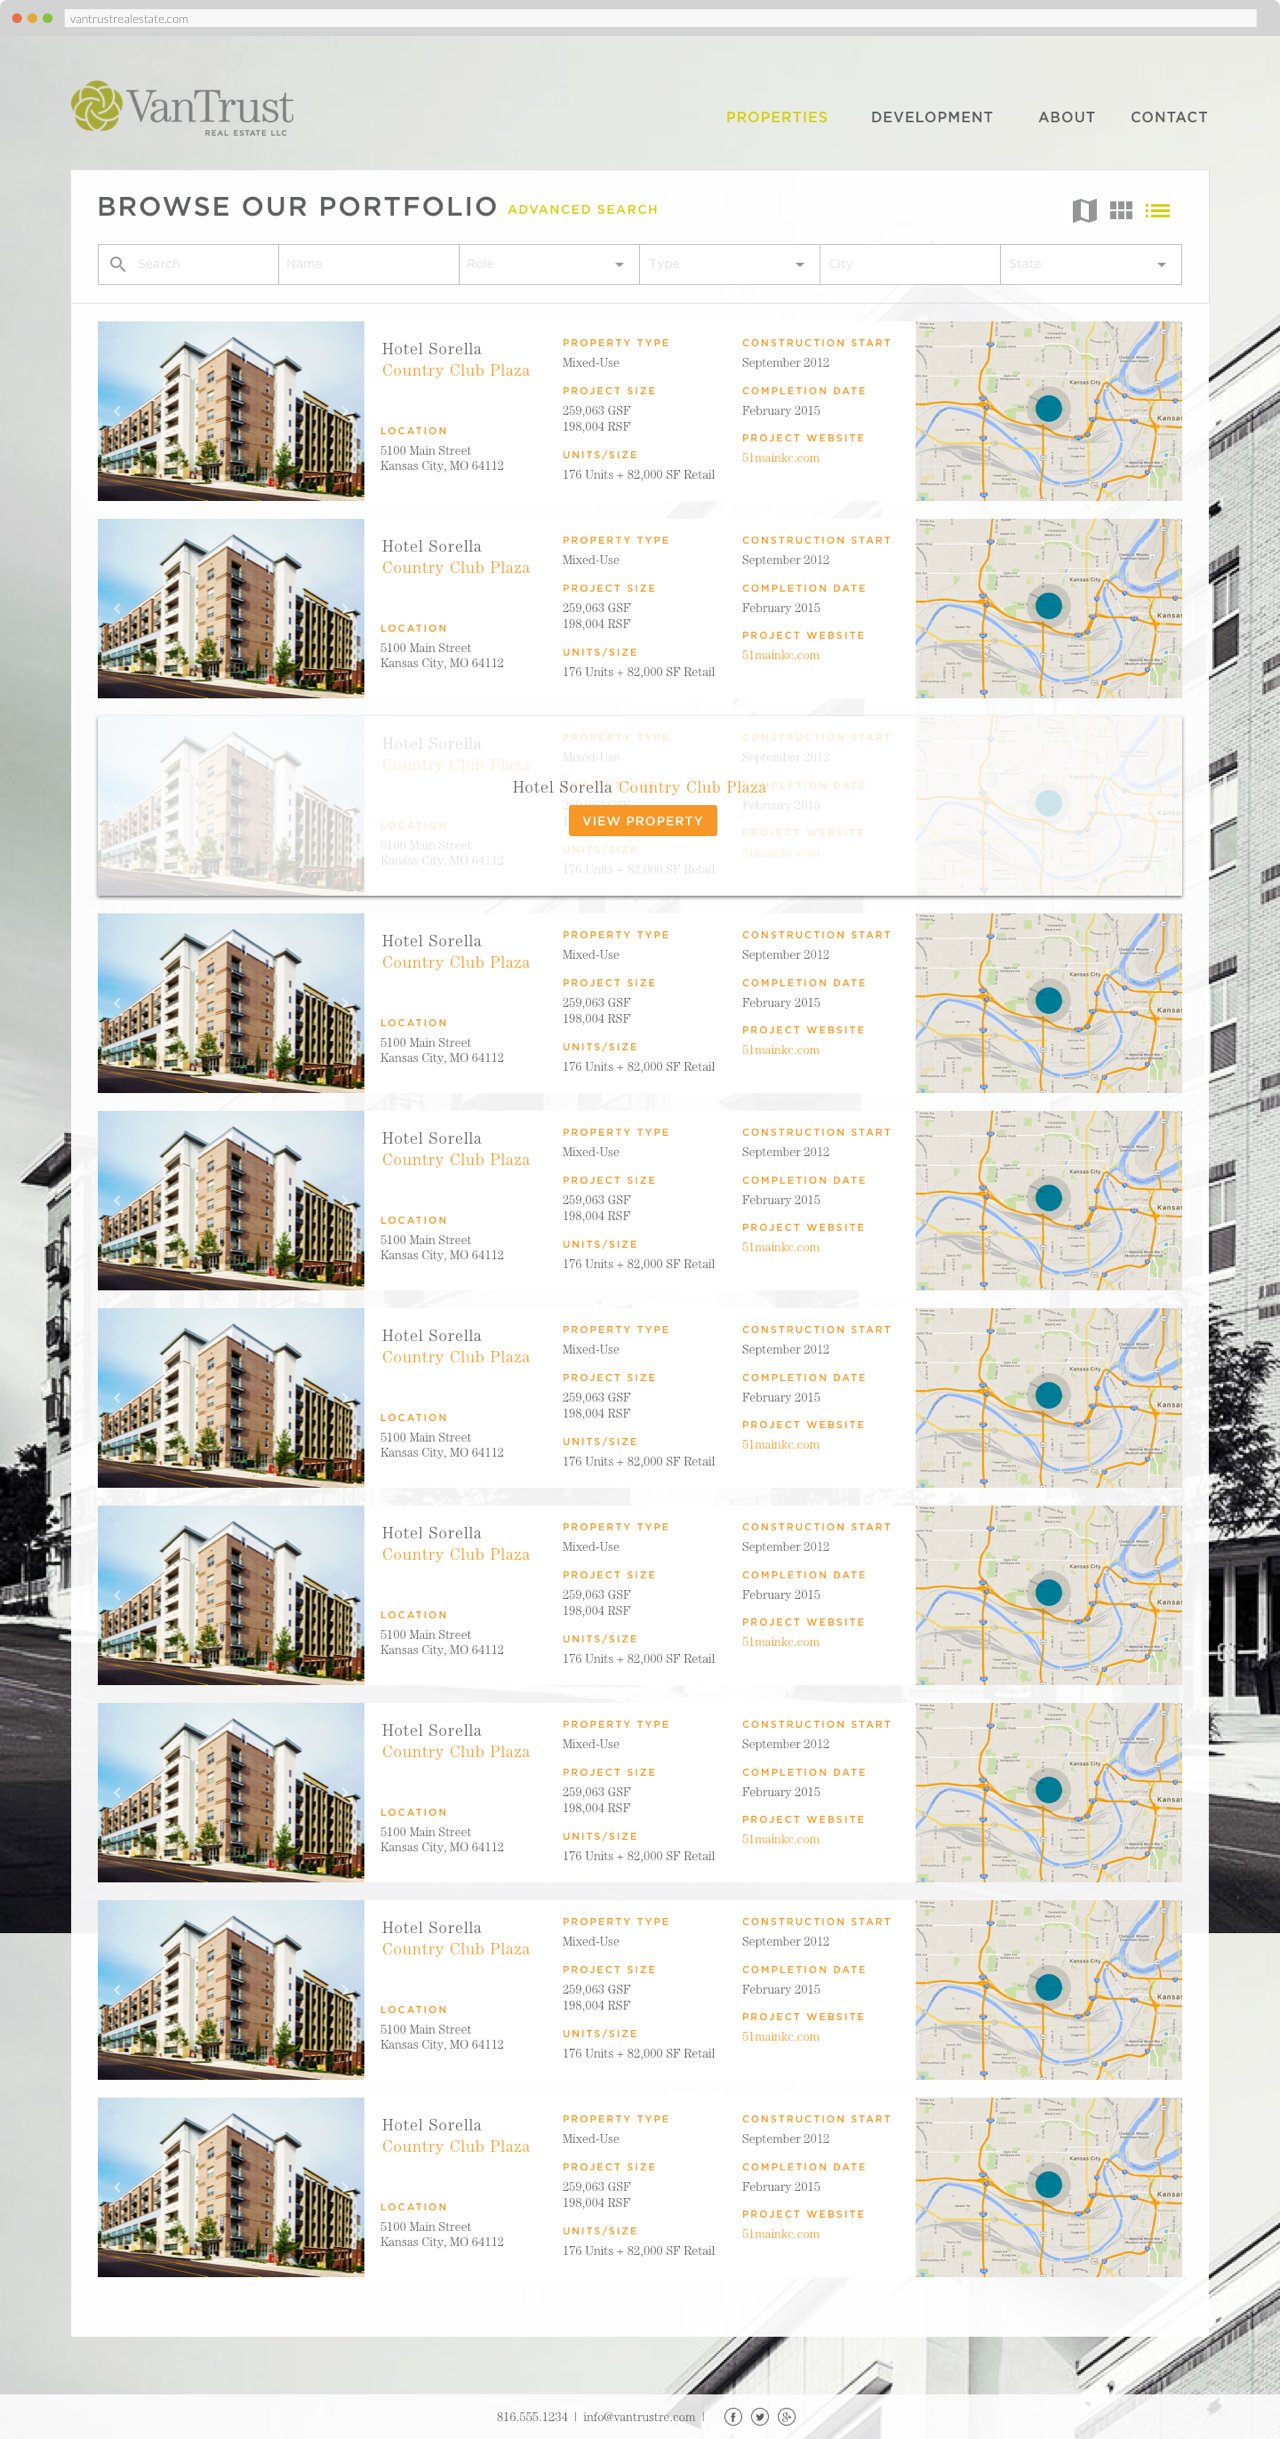 VanTrust Real Estate - Property Search, List View